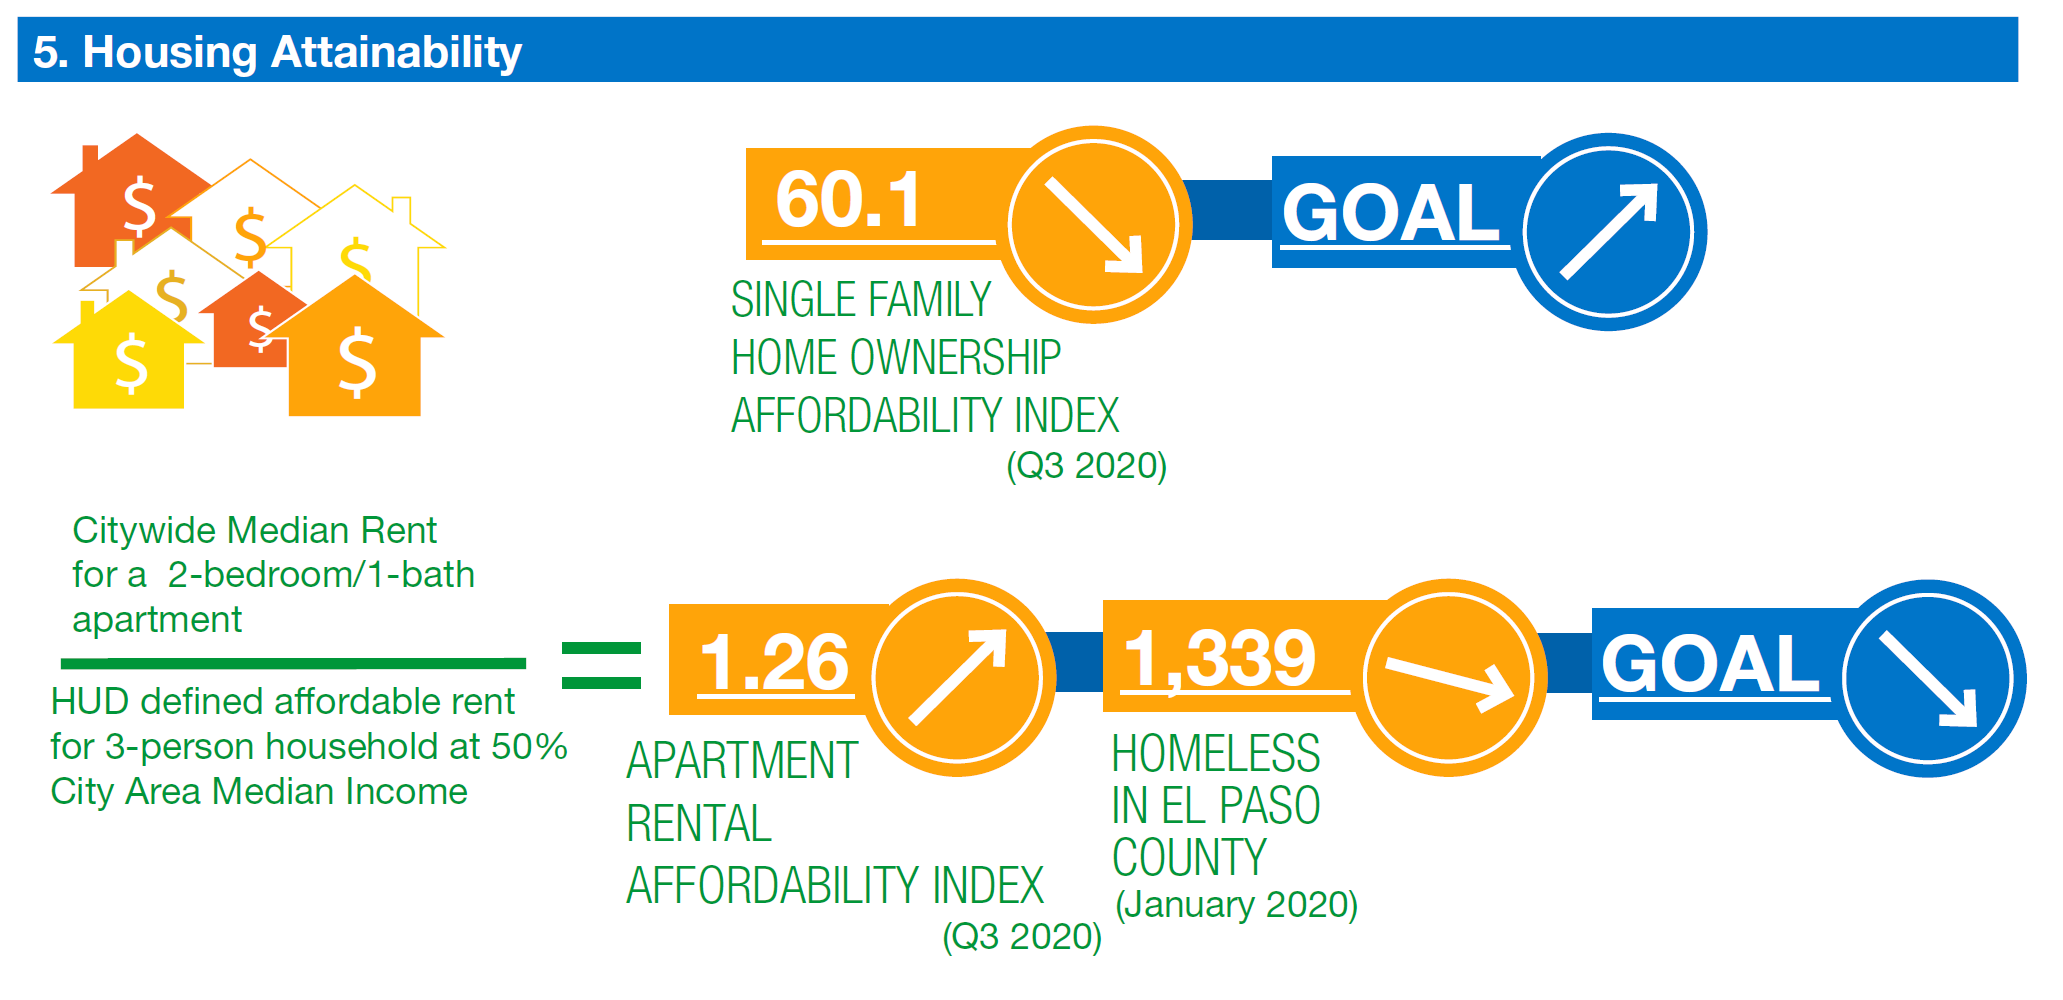 housing affordability. single family home ownership affordability index is 60.1. trending down. Goal to increase. Apartment rental affordability index 1.26 trending up. number of homeless persons in El Paso County 1,339. Goal for both to decrease.